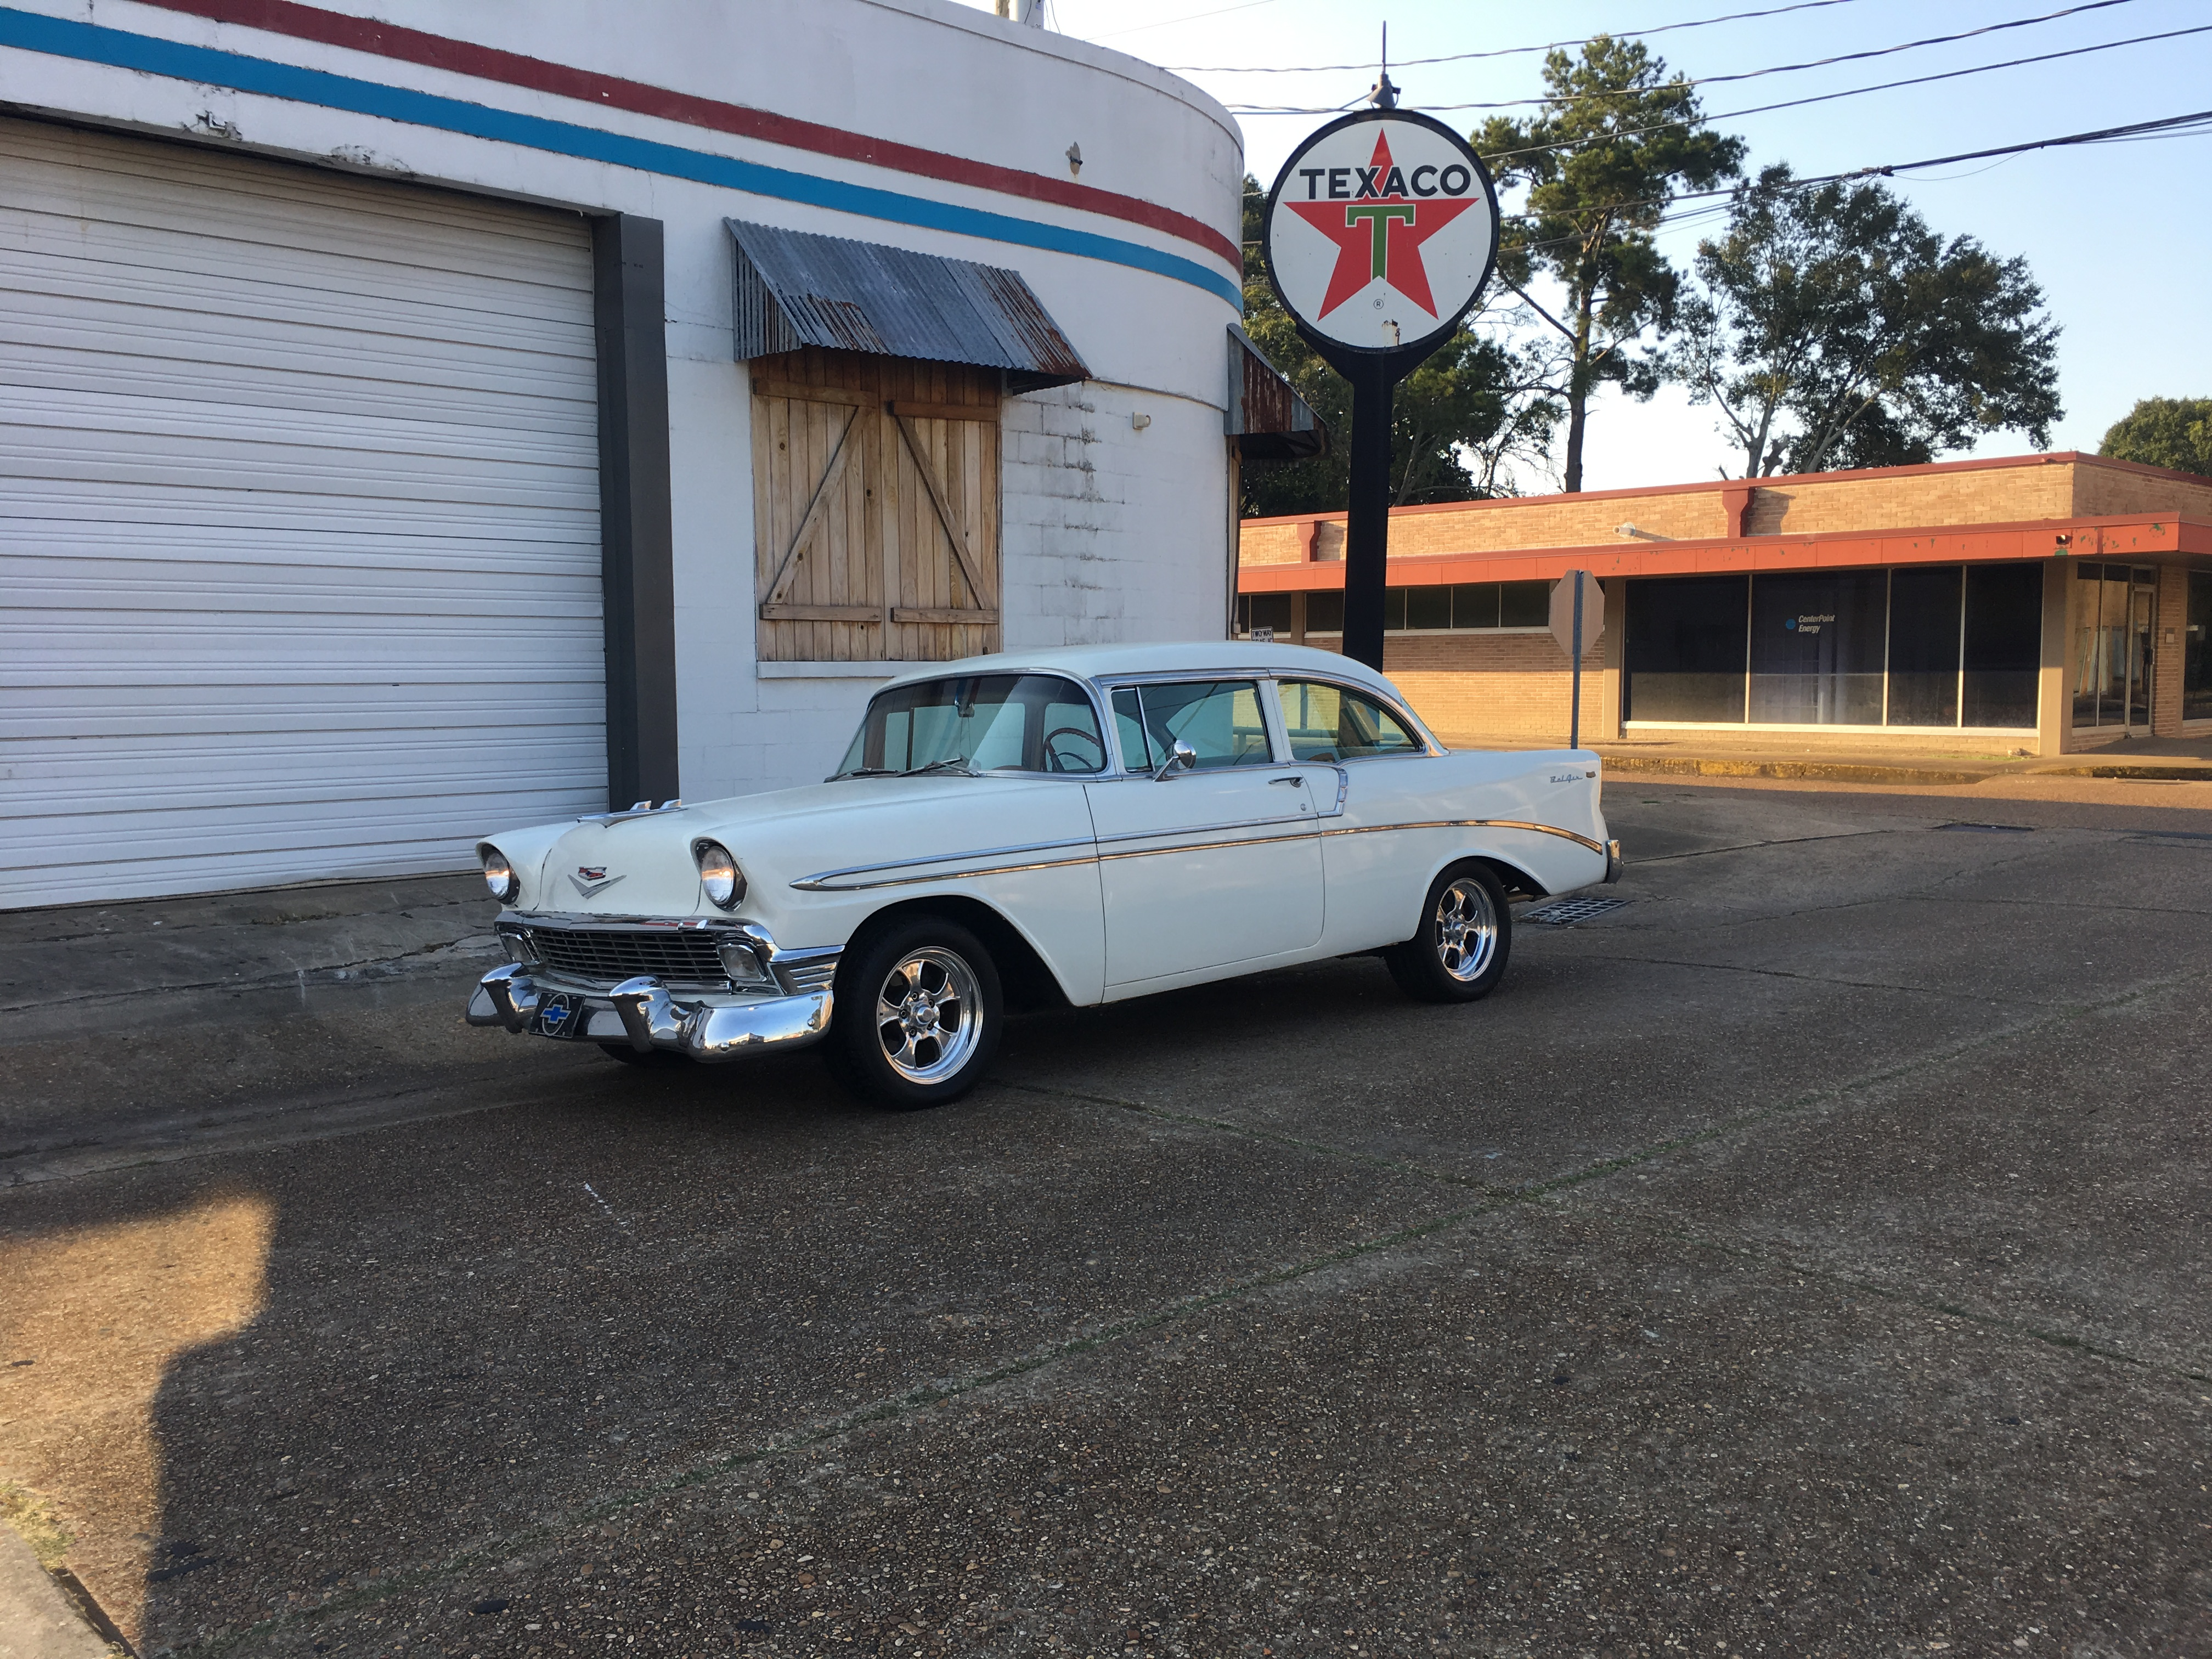 1951 Chevrolet Coupe For Sale At Vicari Auctions Biloxi 2017 2 Door Hardtop 2nd Image Of A